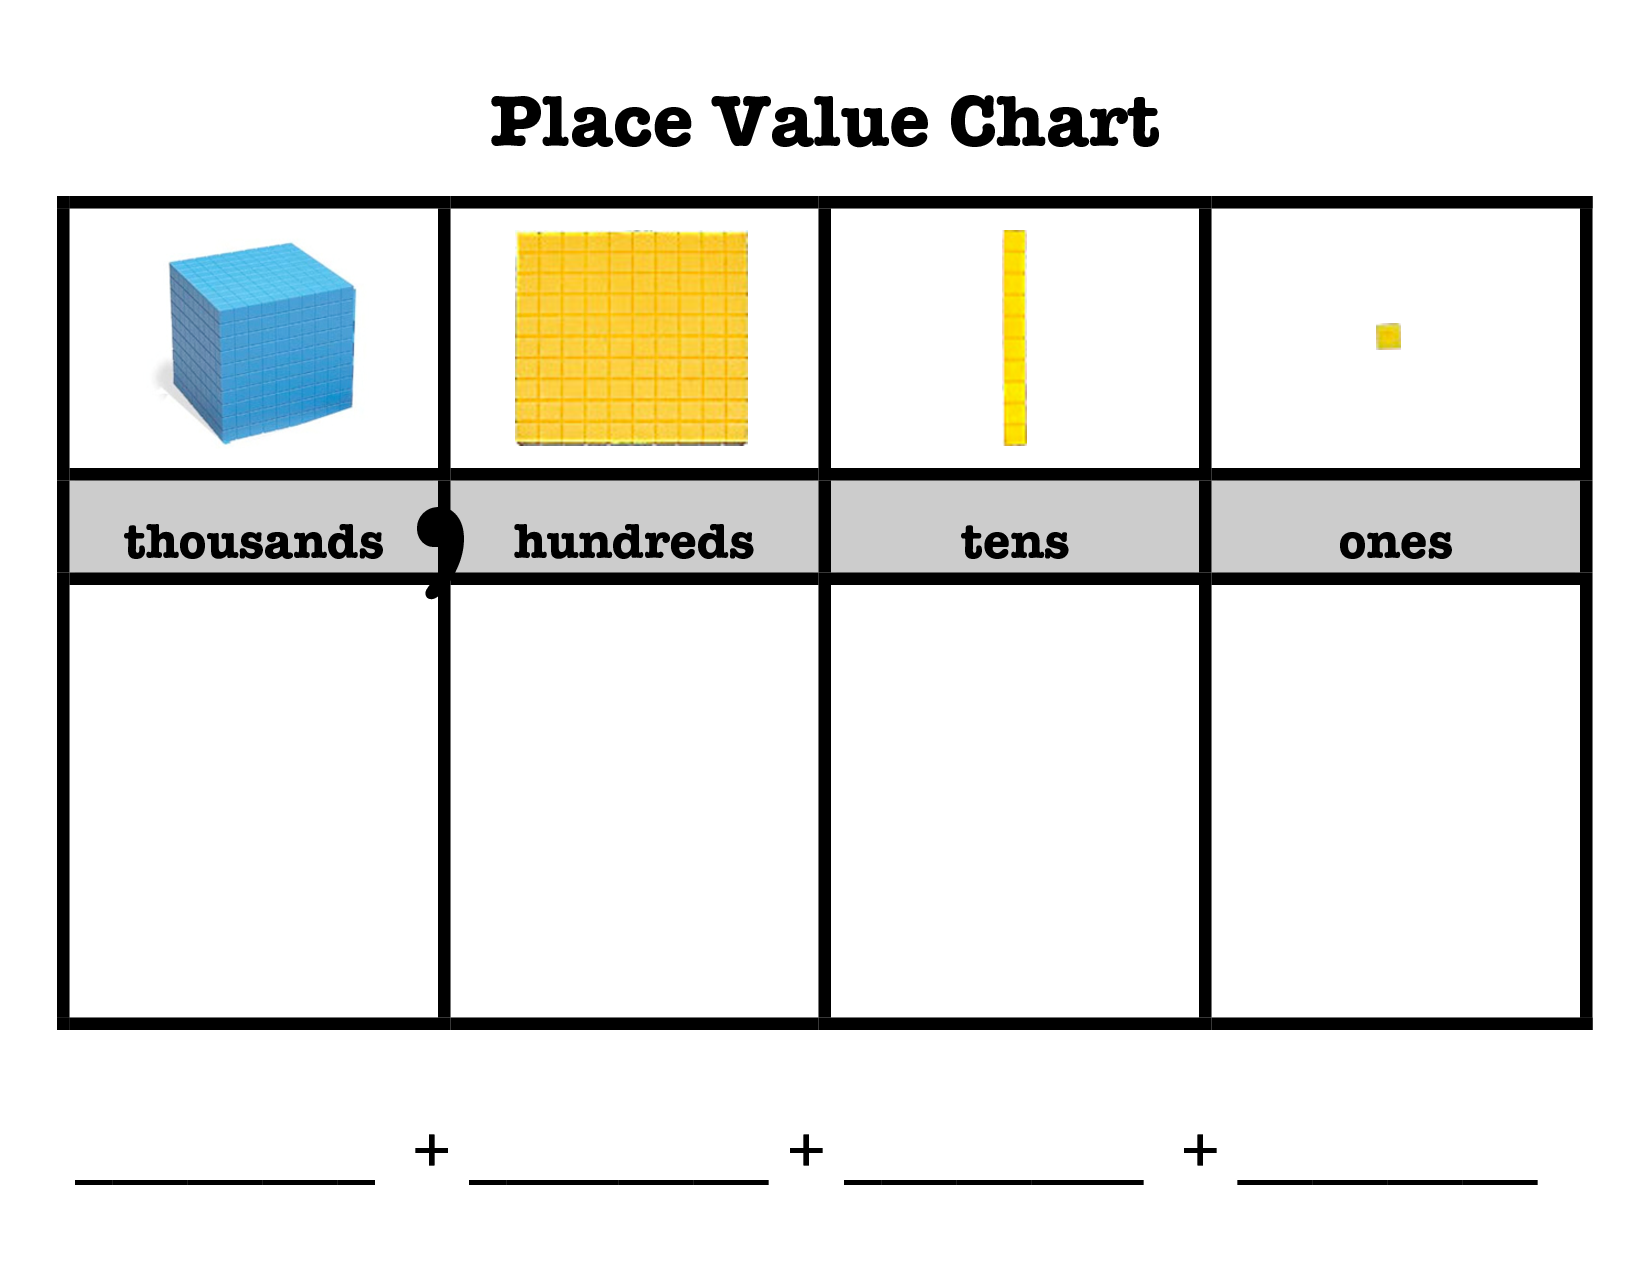 medium resolution of thousands place value chart